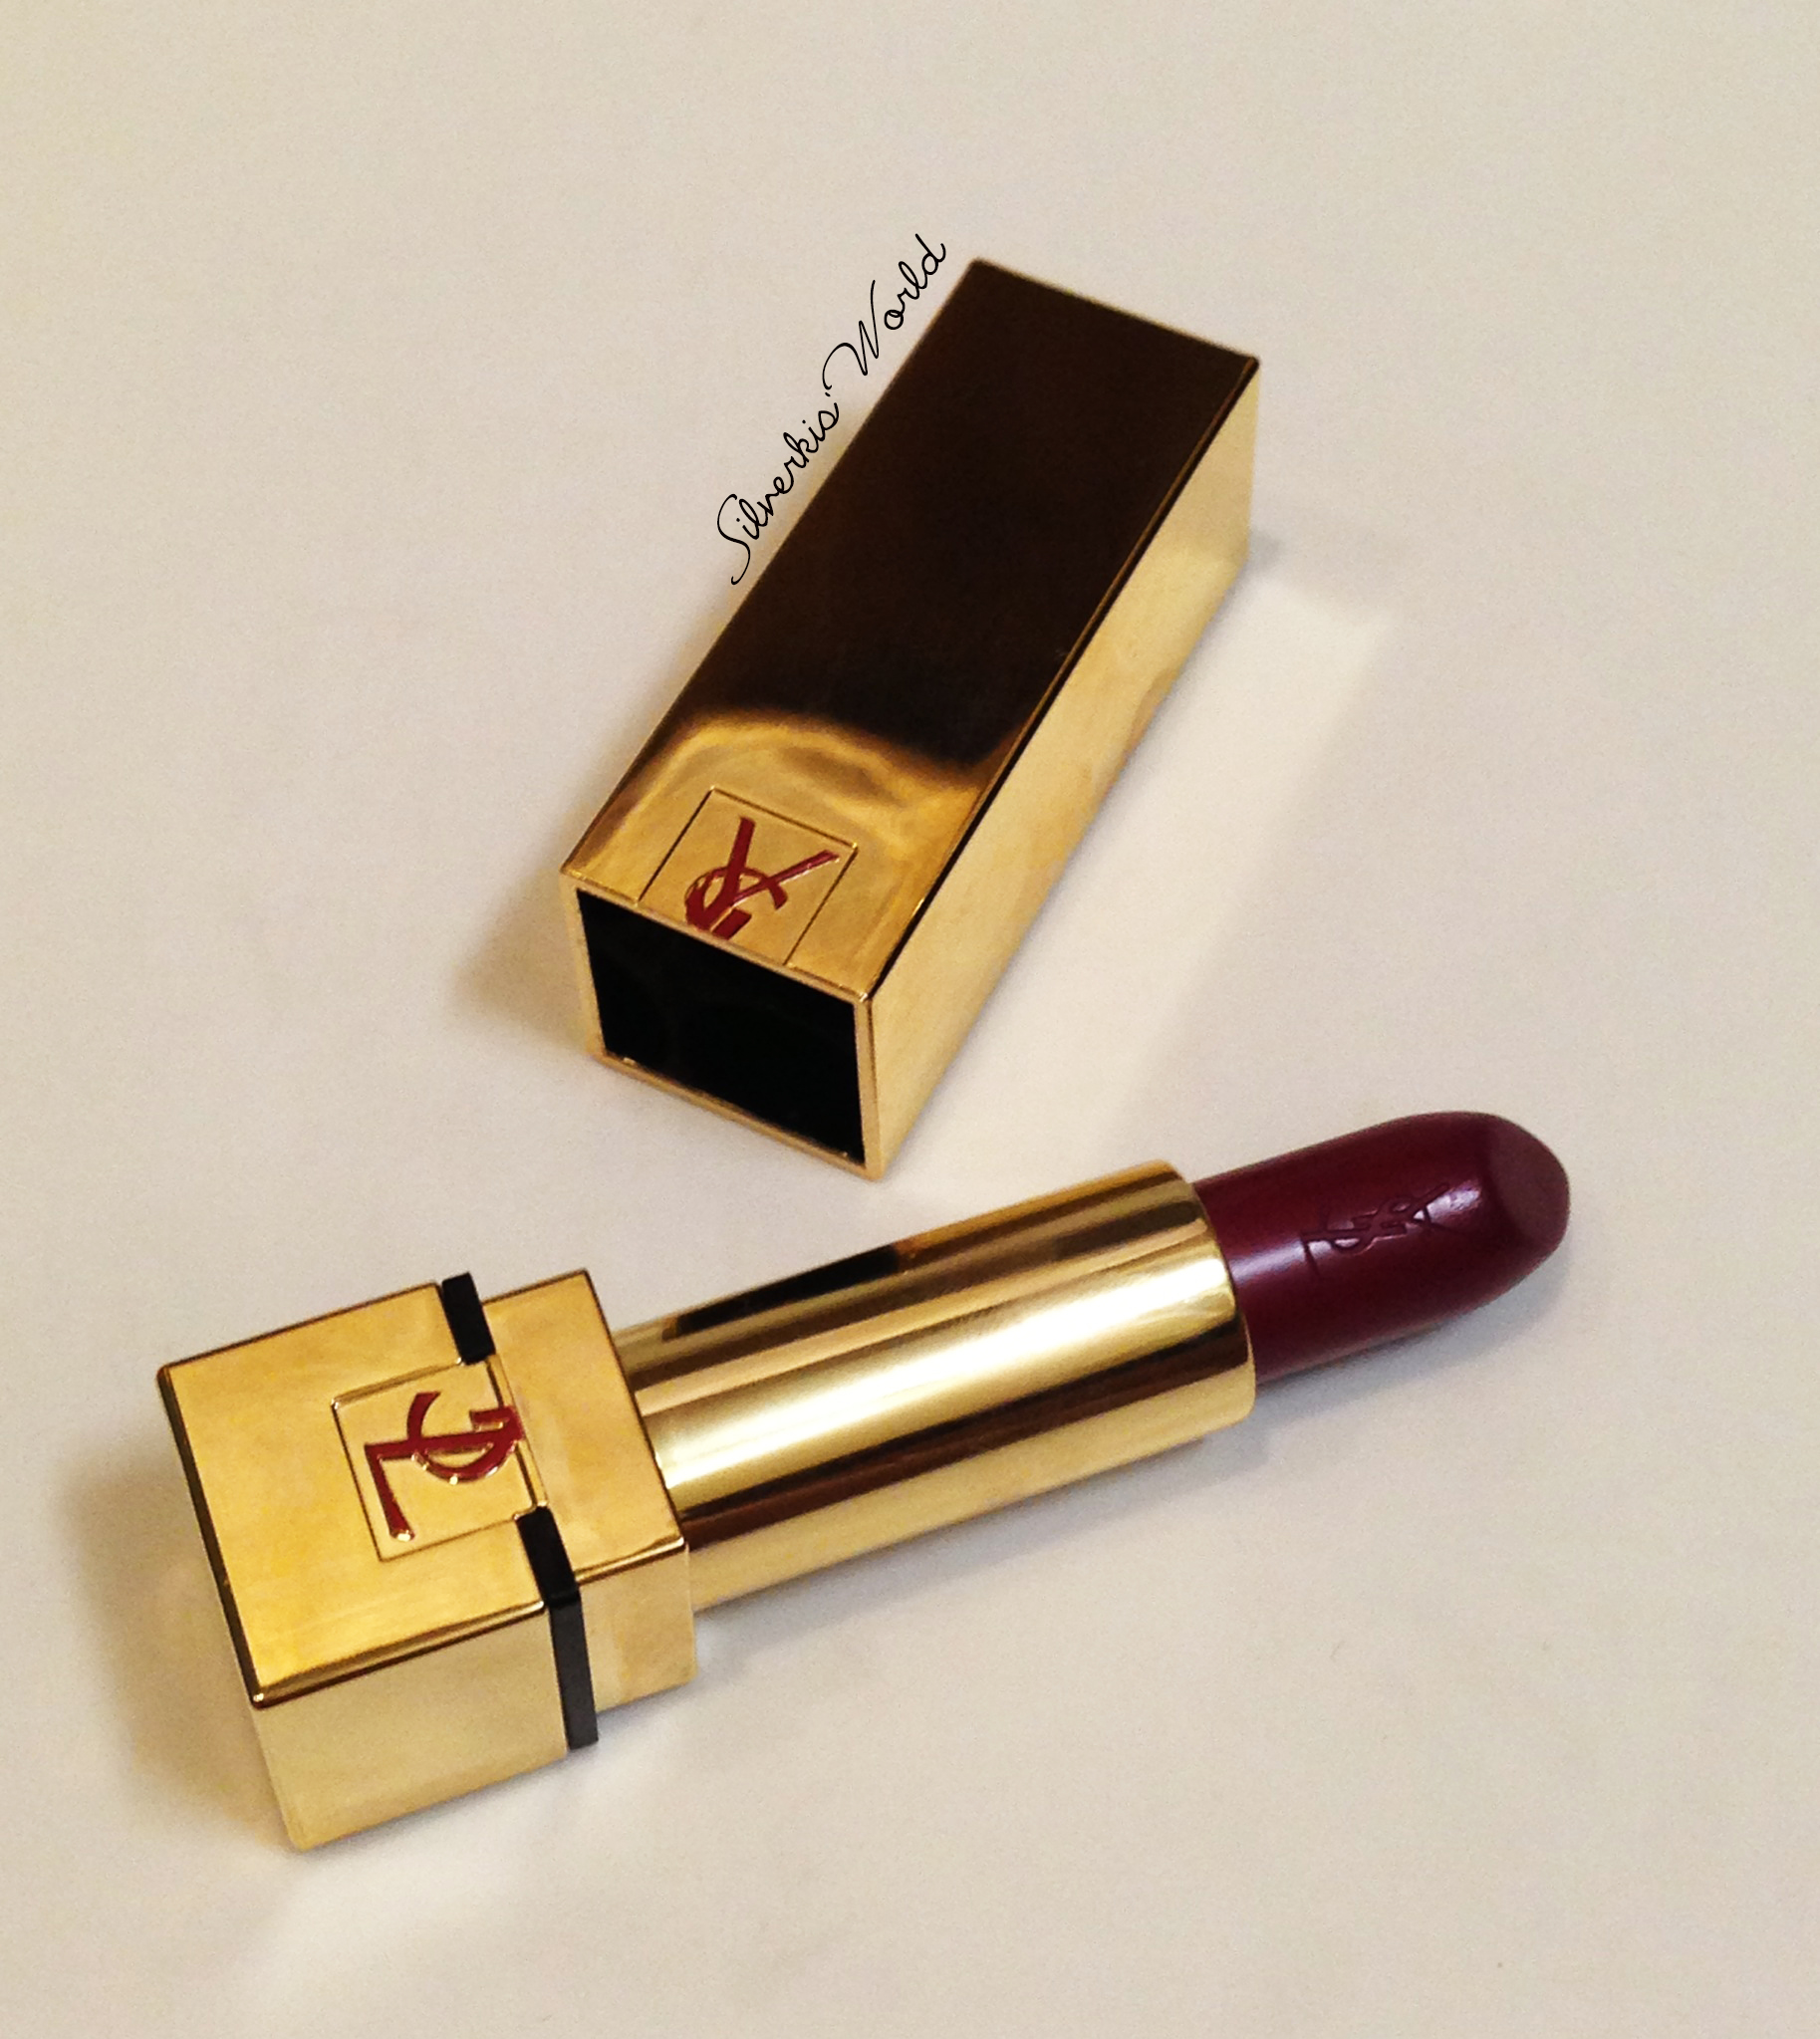 Ysl Rouge Pur Couture Satin Lipstick 92 Rosewood Supreme